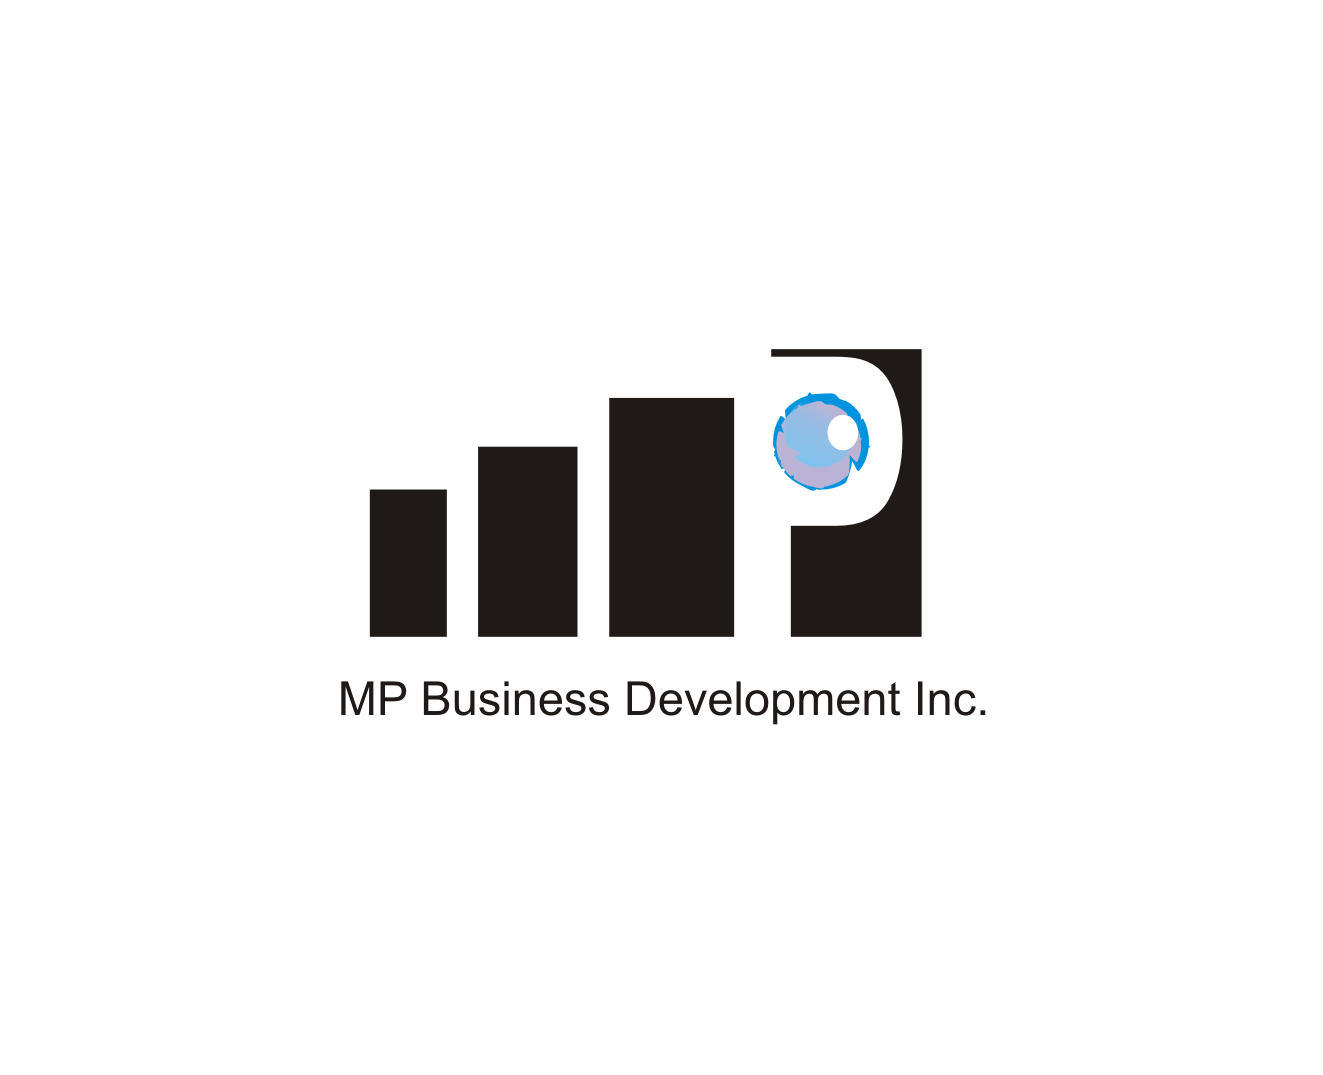 Logo Design by Nthus Nthis - Entry No. 16 in the Logo Design Contest MP Business Development Inc. Logo Design.